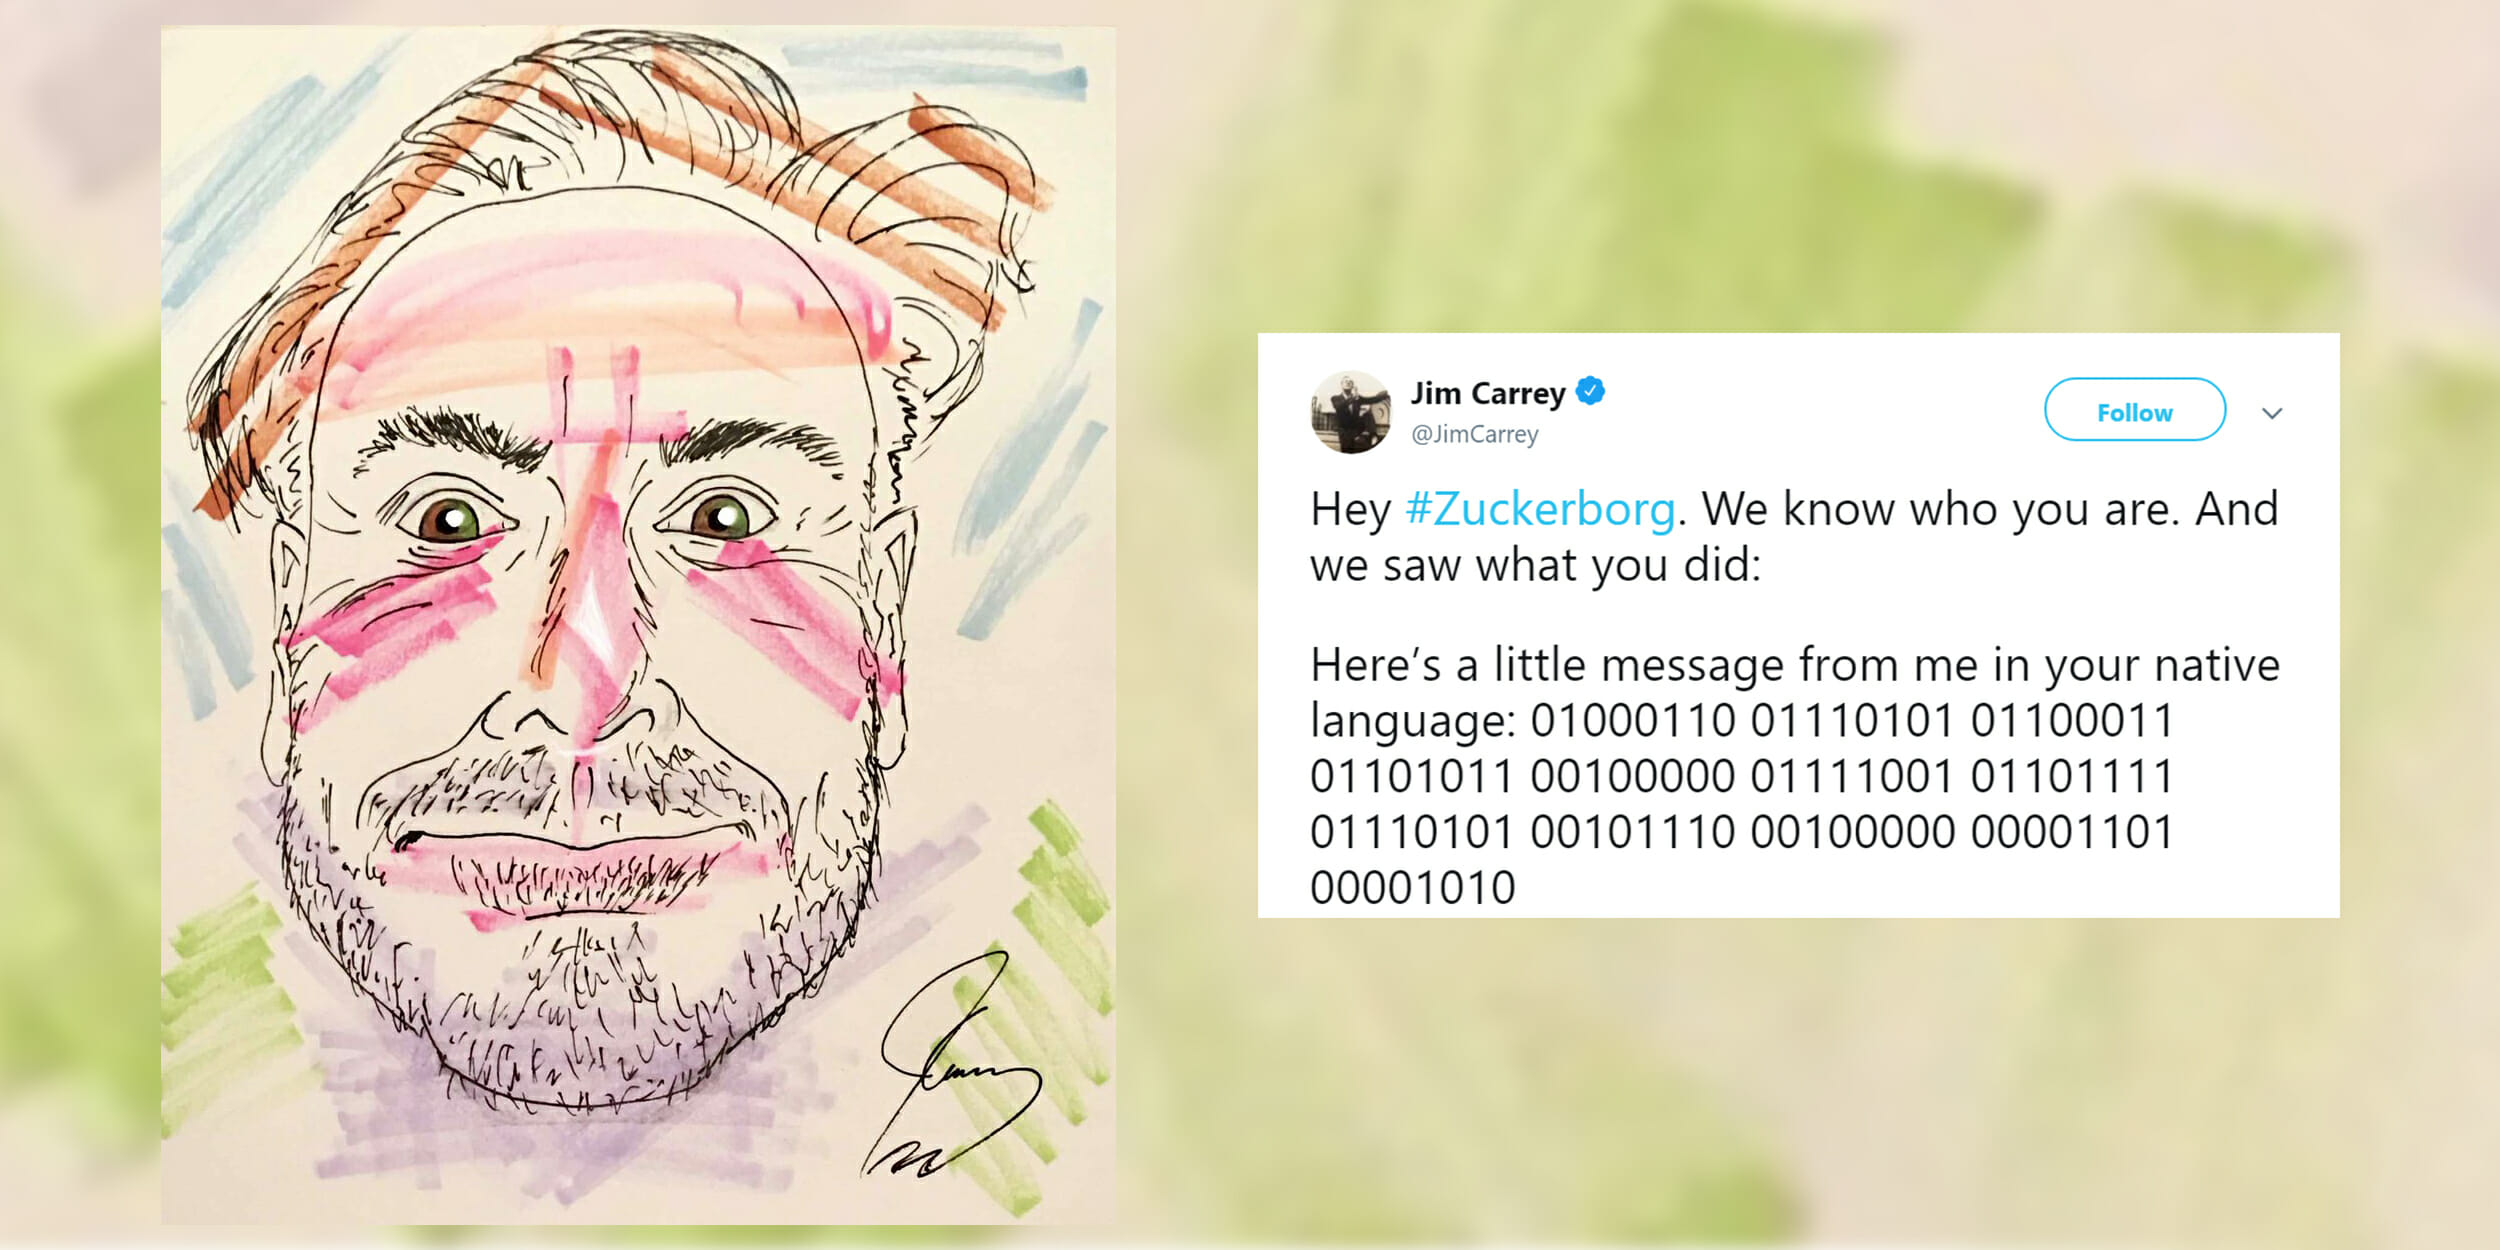 Jim Carrey tells Zuckerberg 'f*ck you' in coded Twitter message